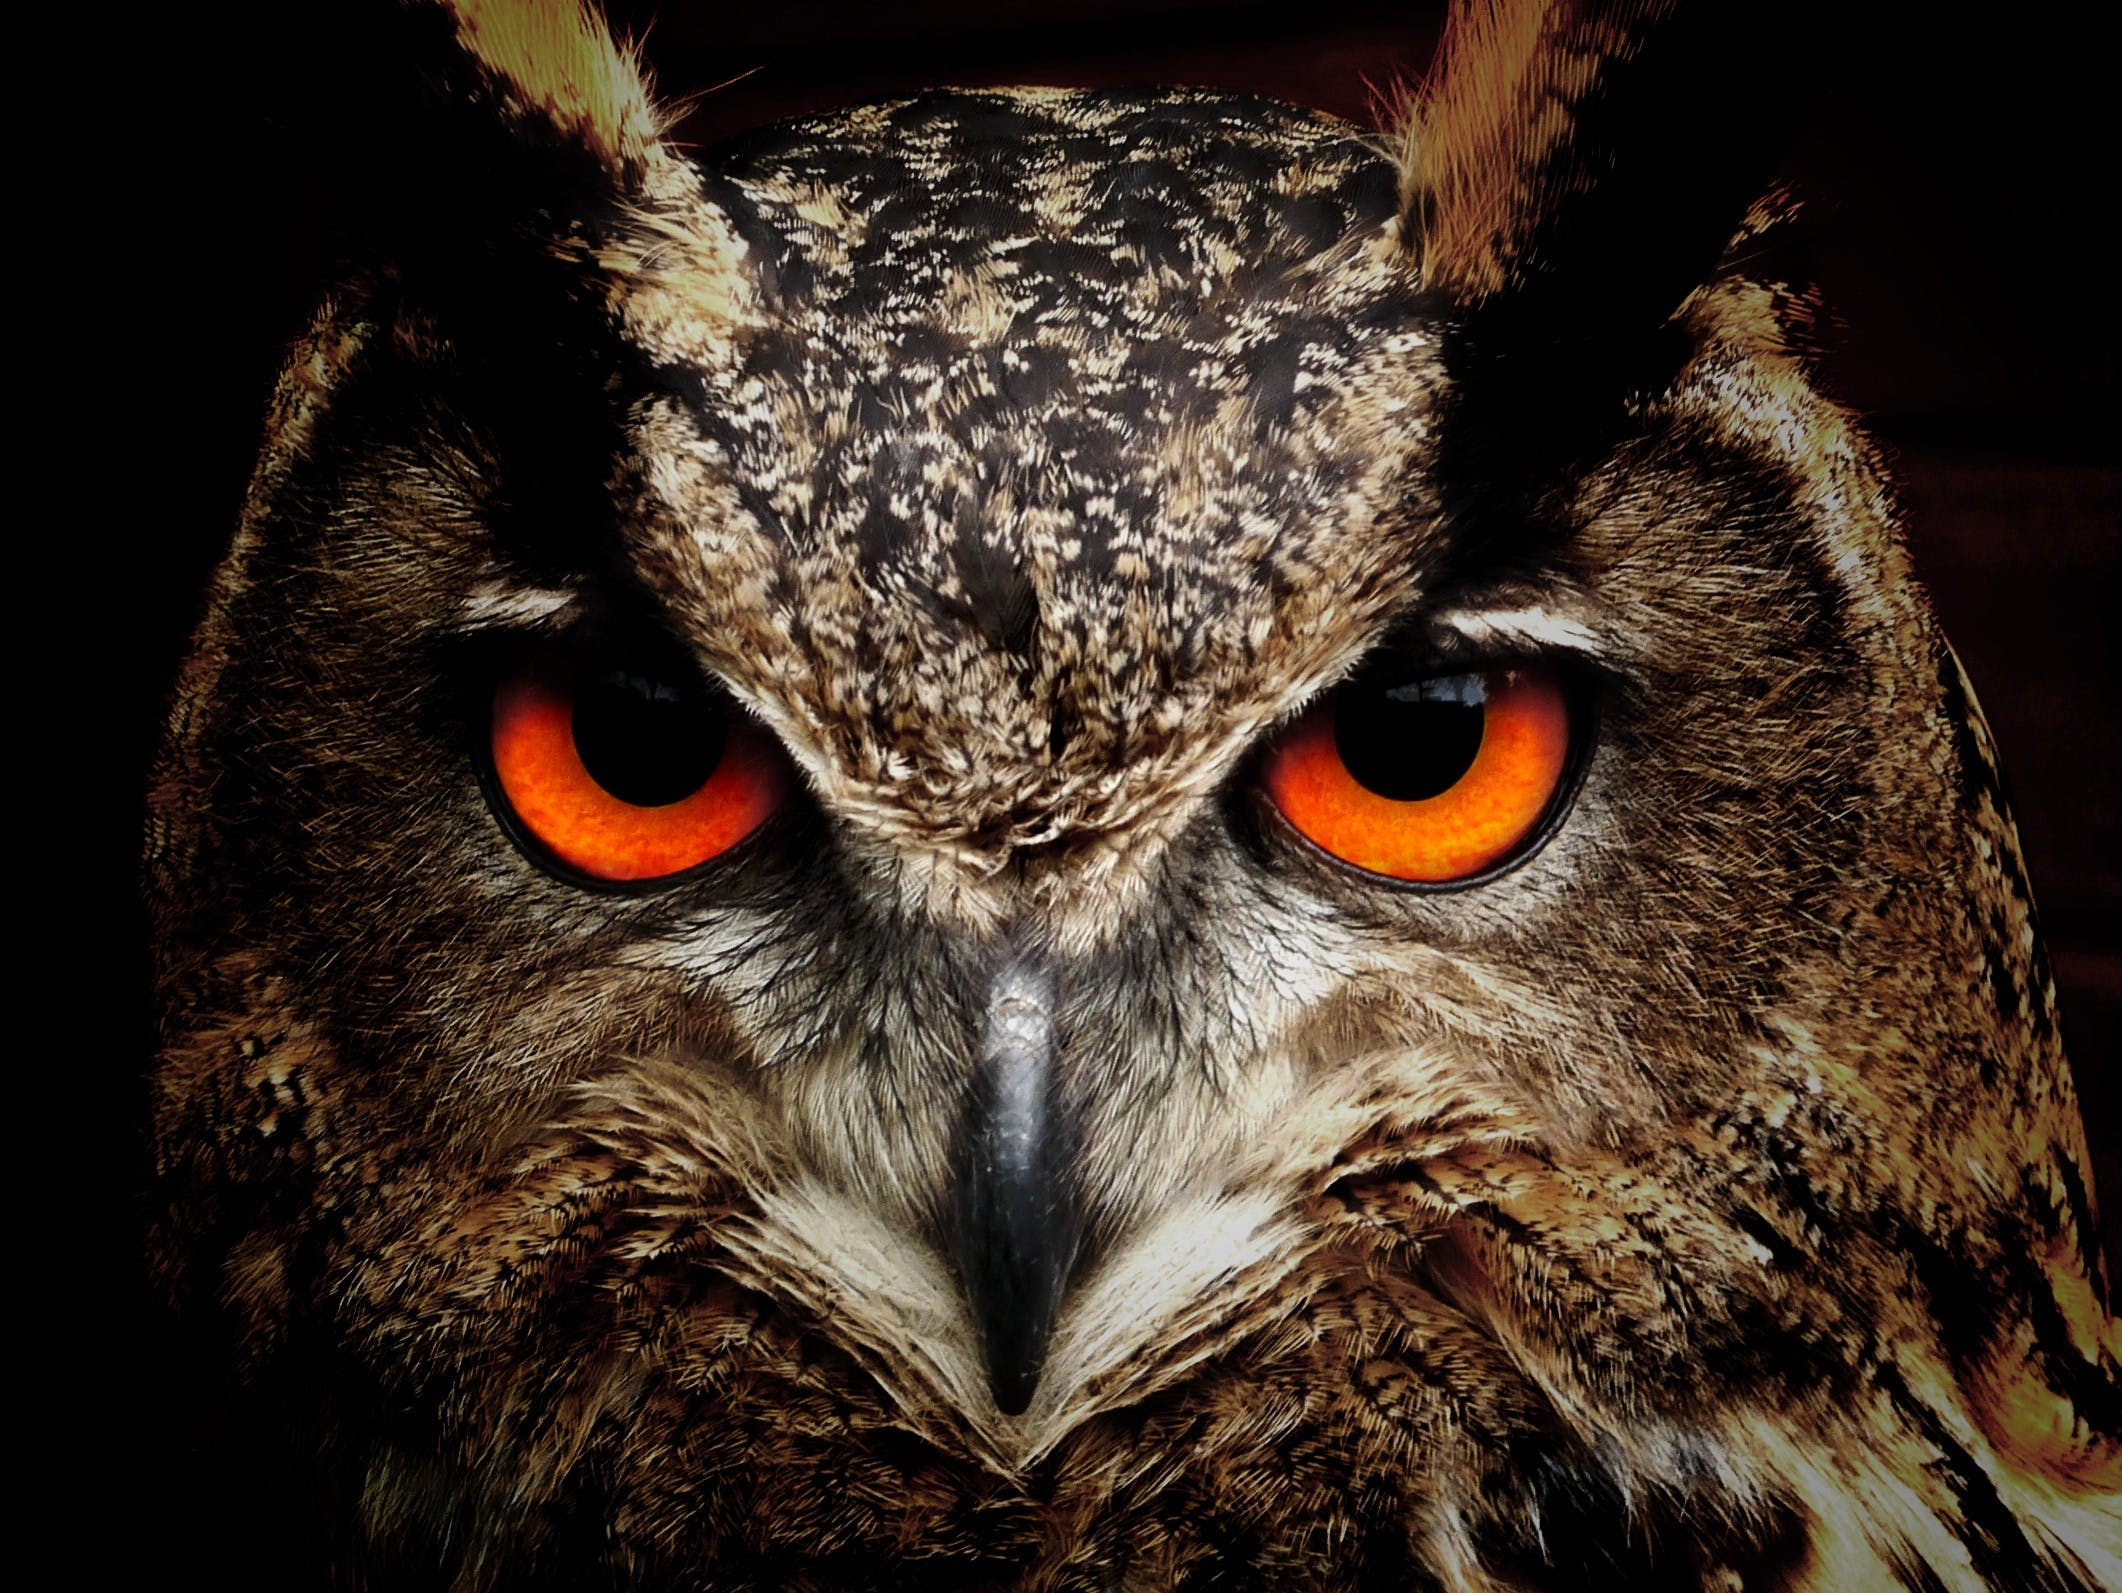 Brown and Black Owl Staring